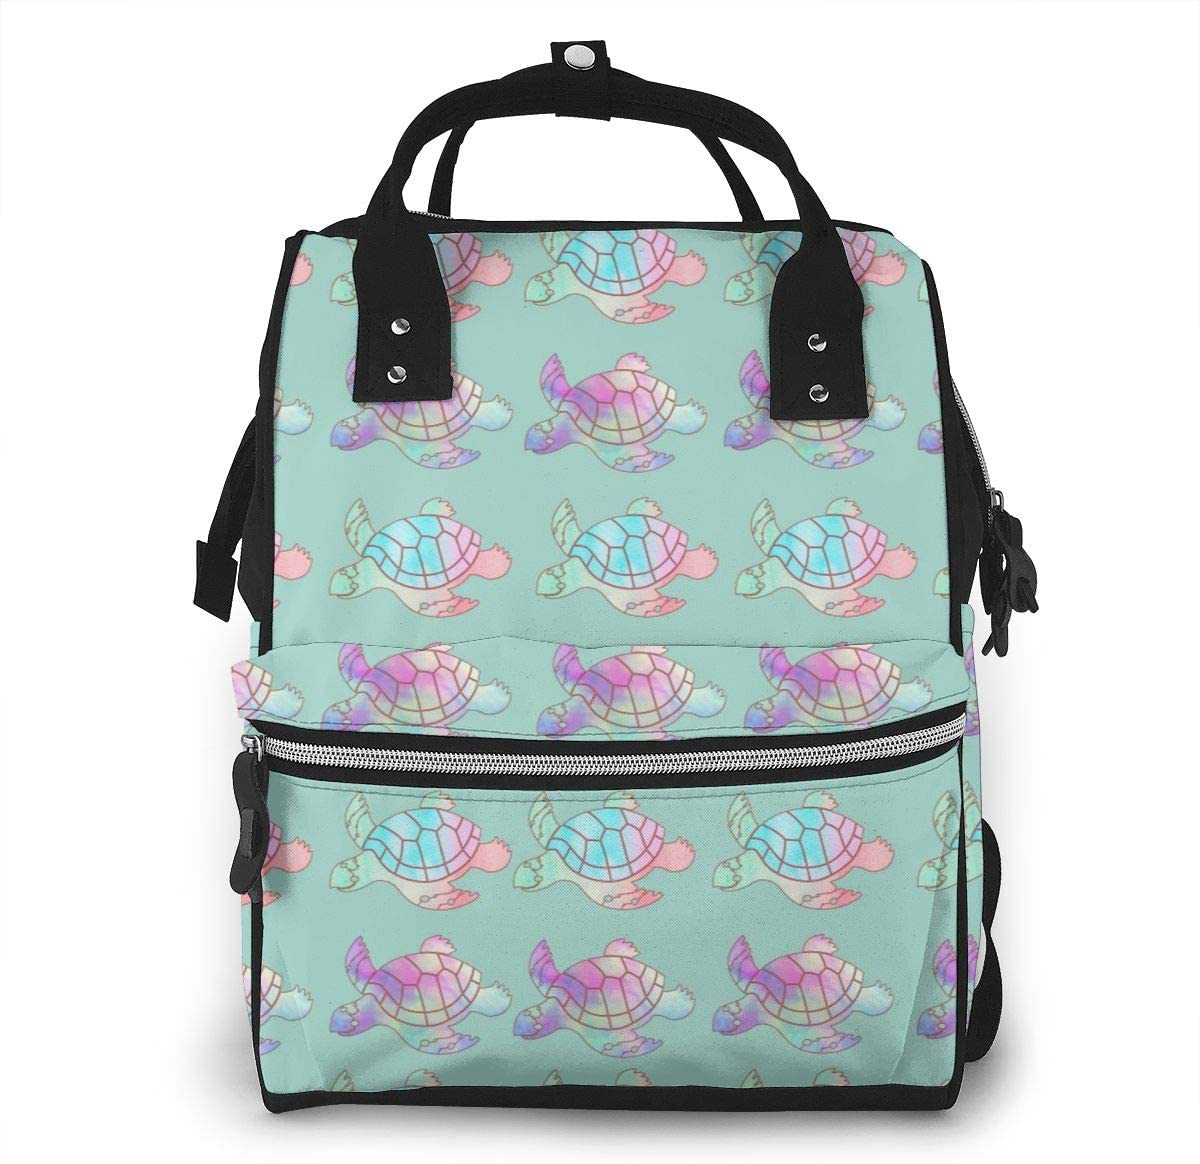 NiYoung Women Casual Zippers Large Capacity Backpack Mummy Bag Swim Diapers,Watercolor Sea Turtles Mint Green